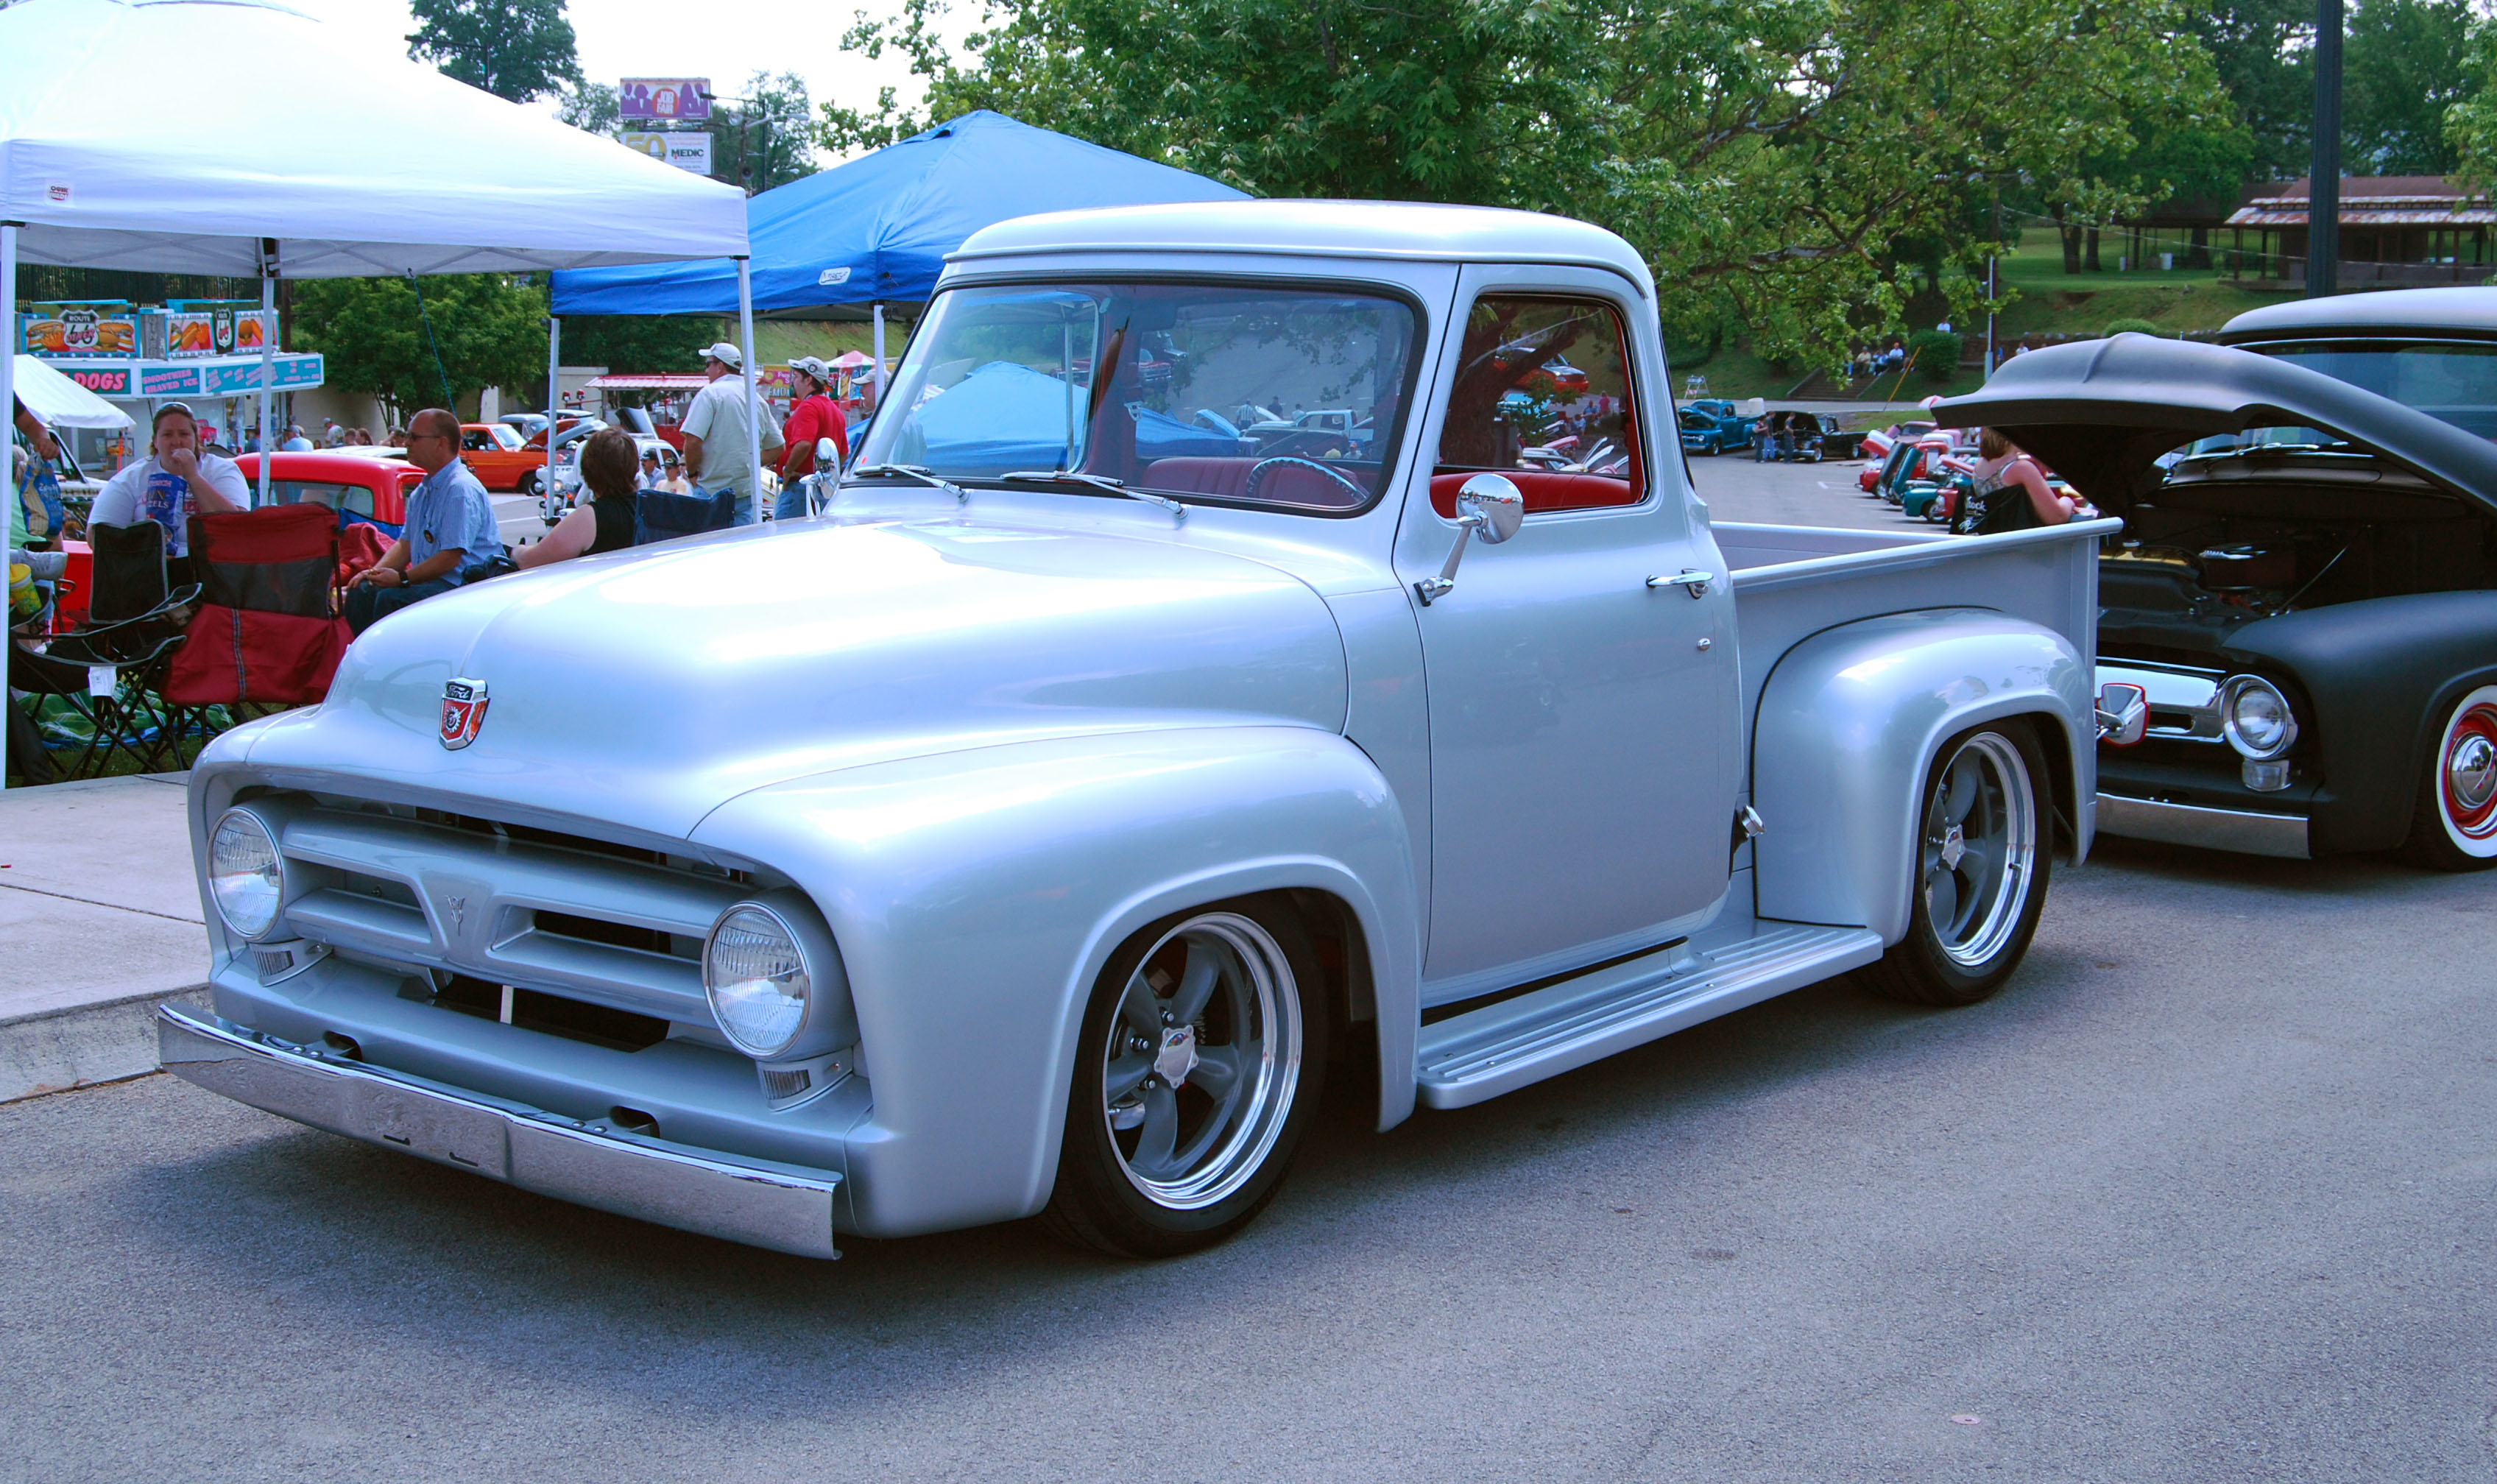 Ford f-100 1951 photo - 4